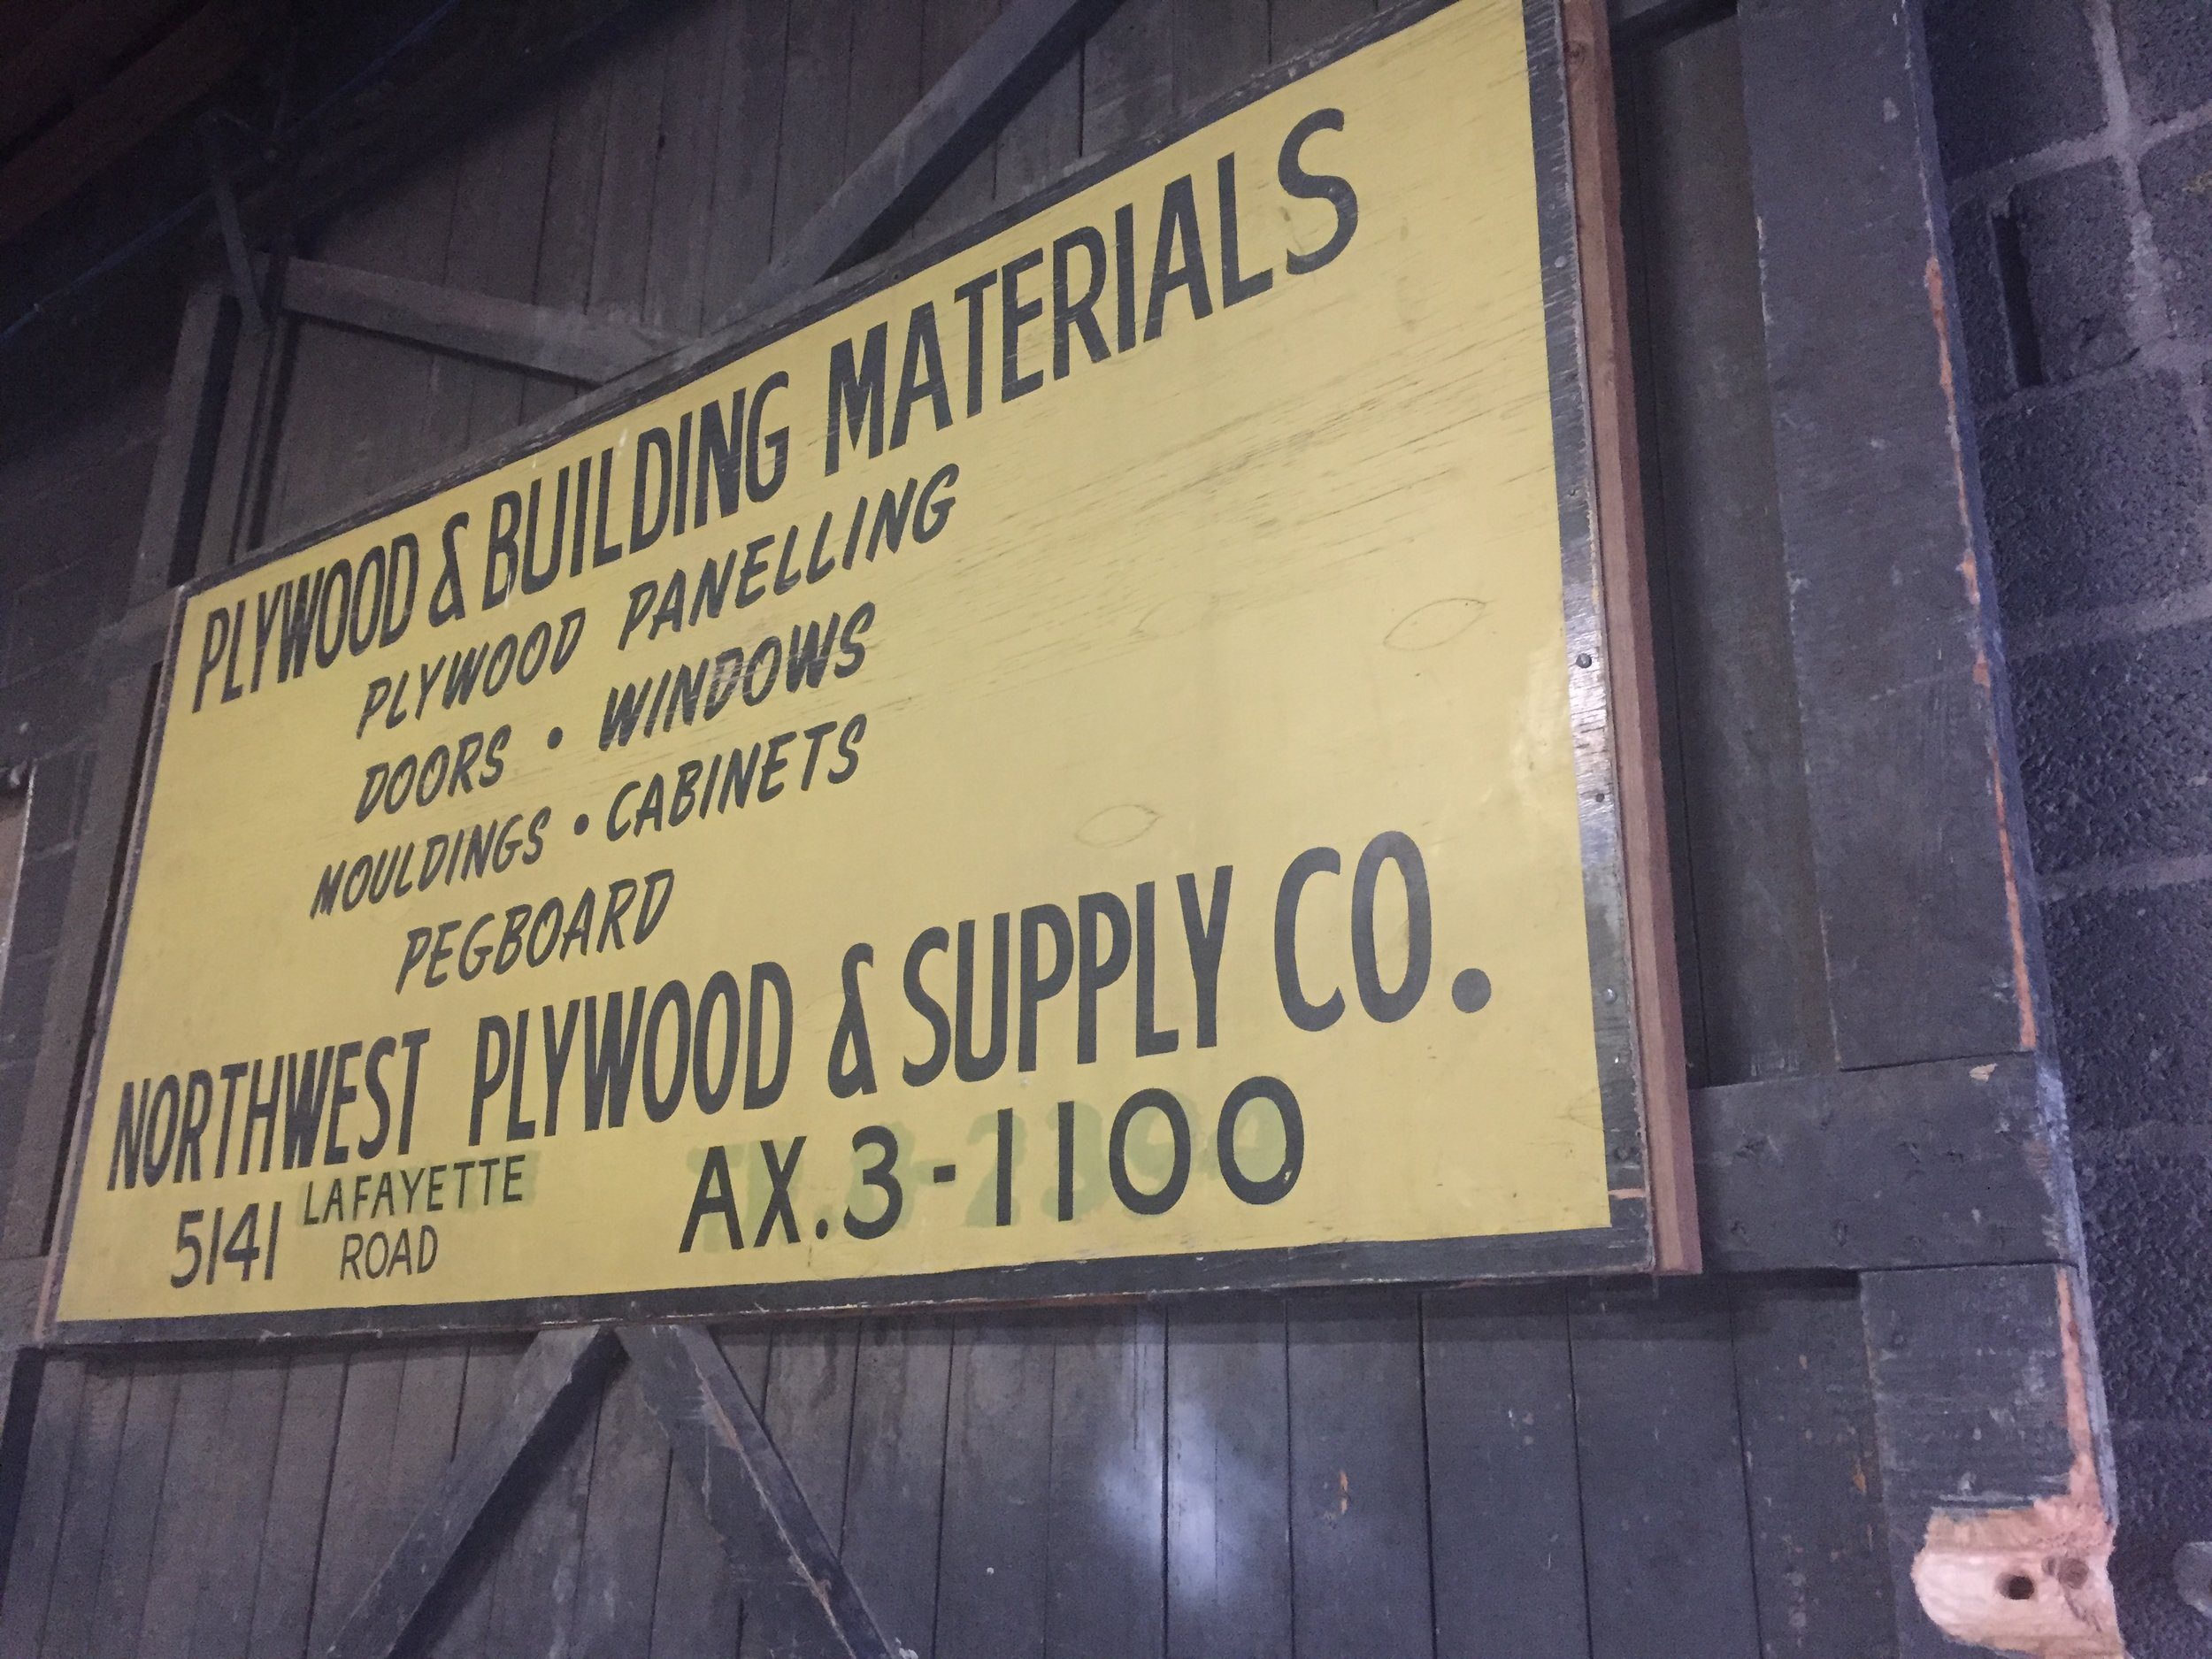 Our sign from 1956! - We have evolved from selling construction materials to selling fine woodworking supplies over the span of 62 years!